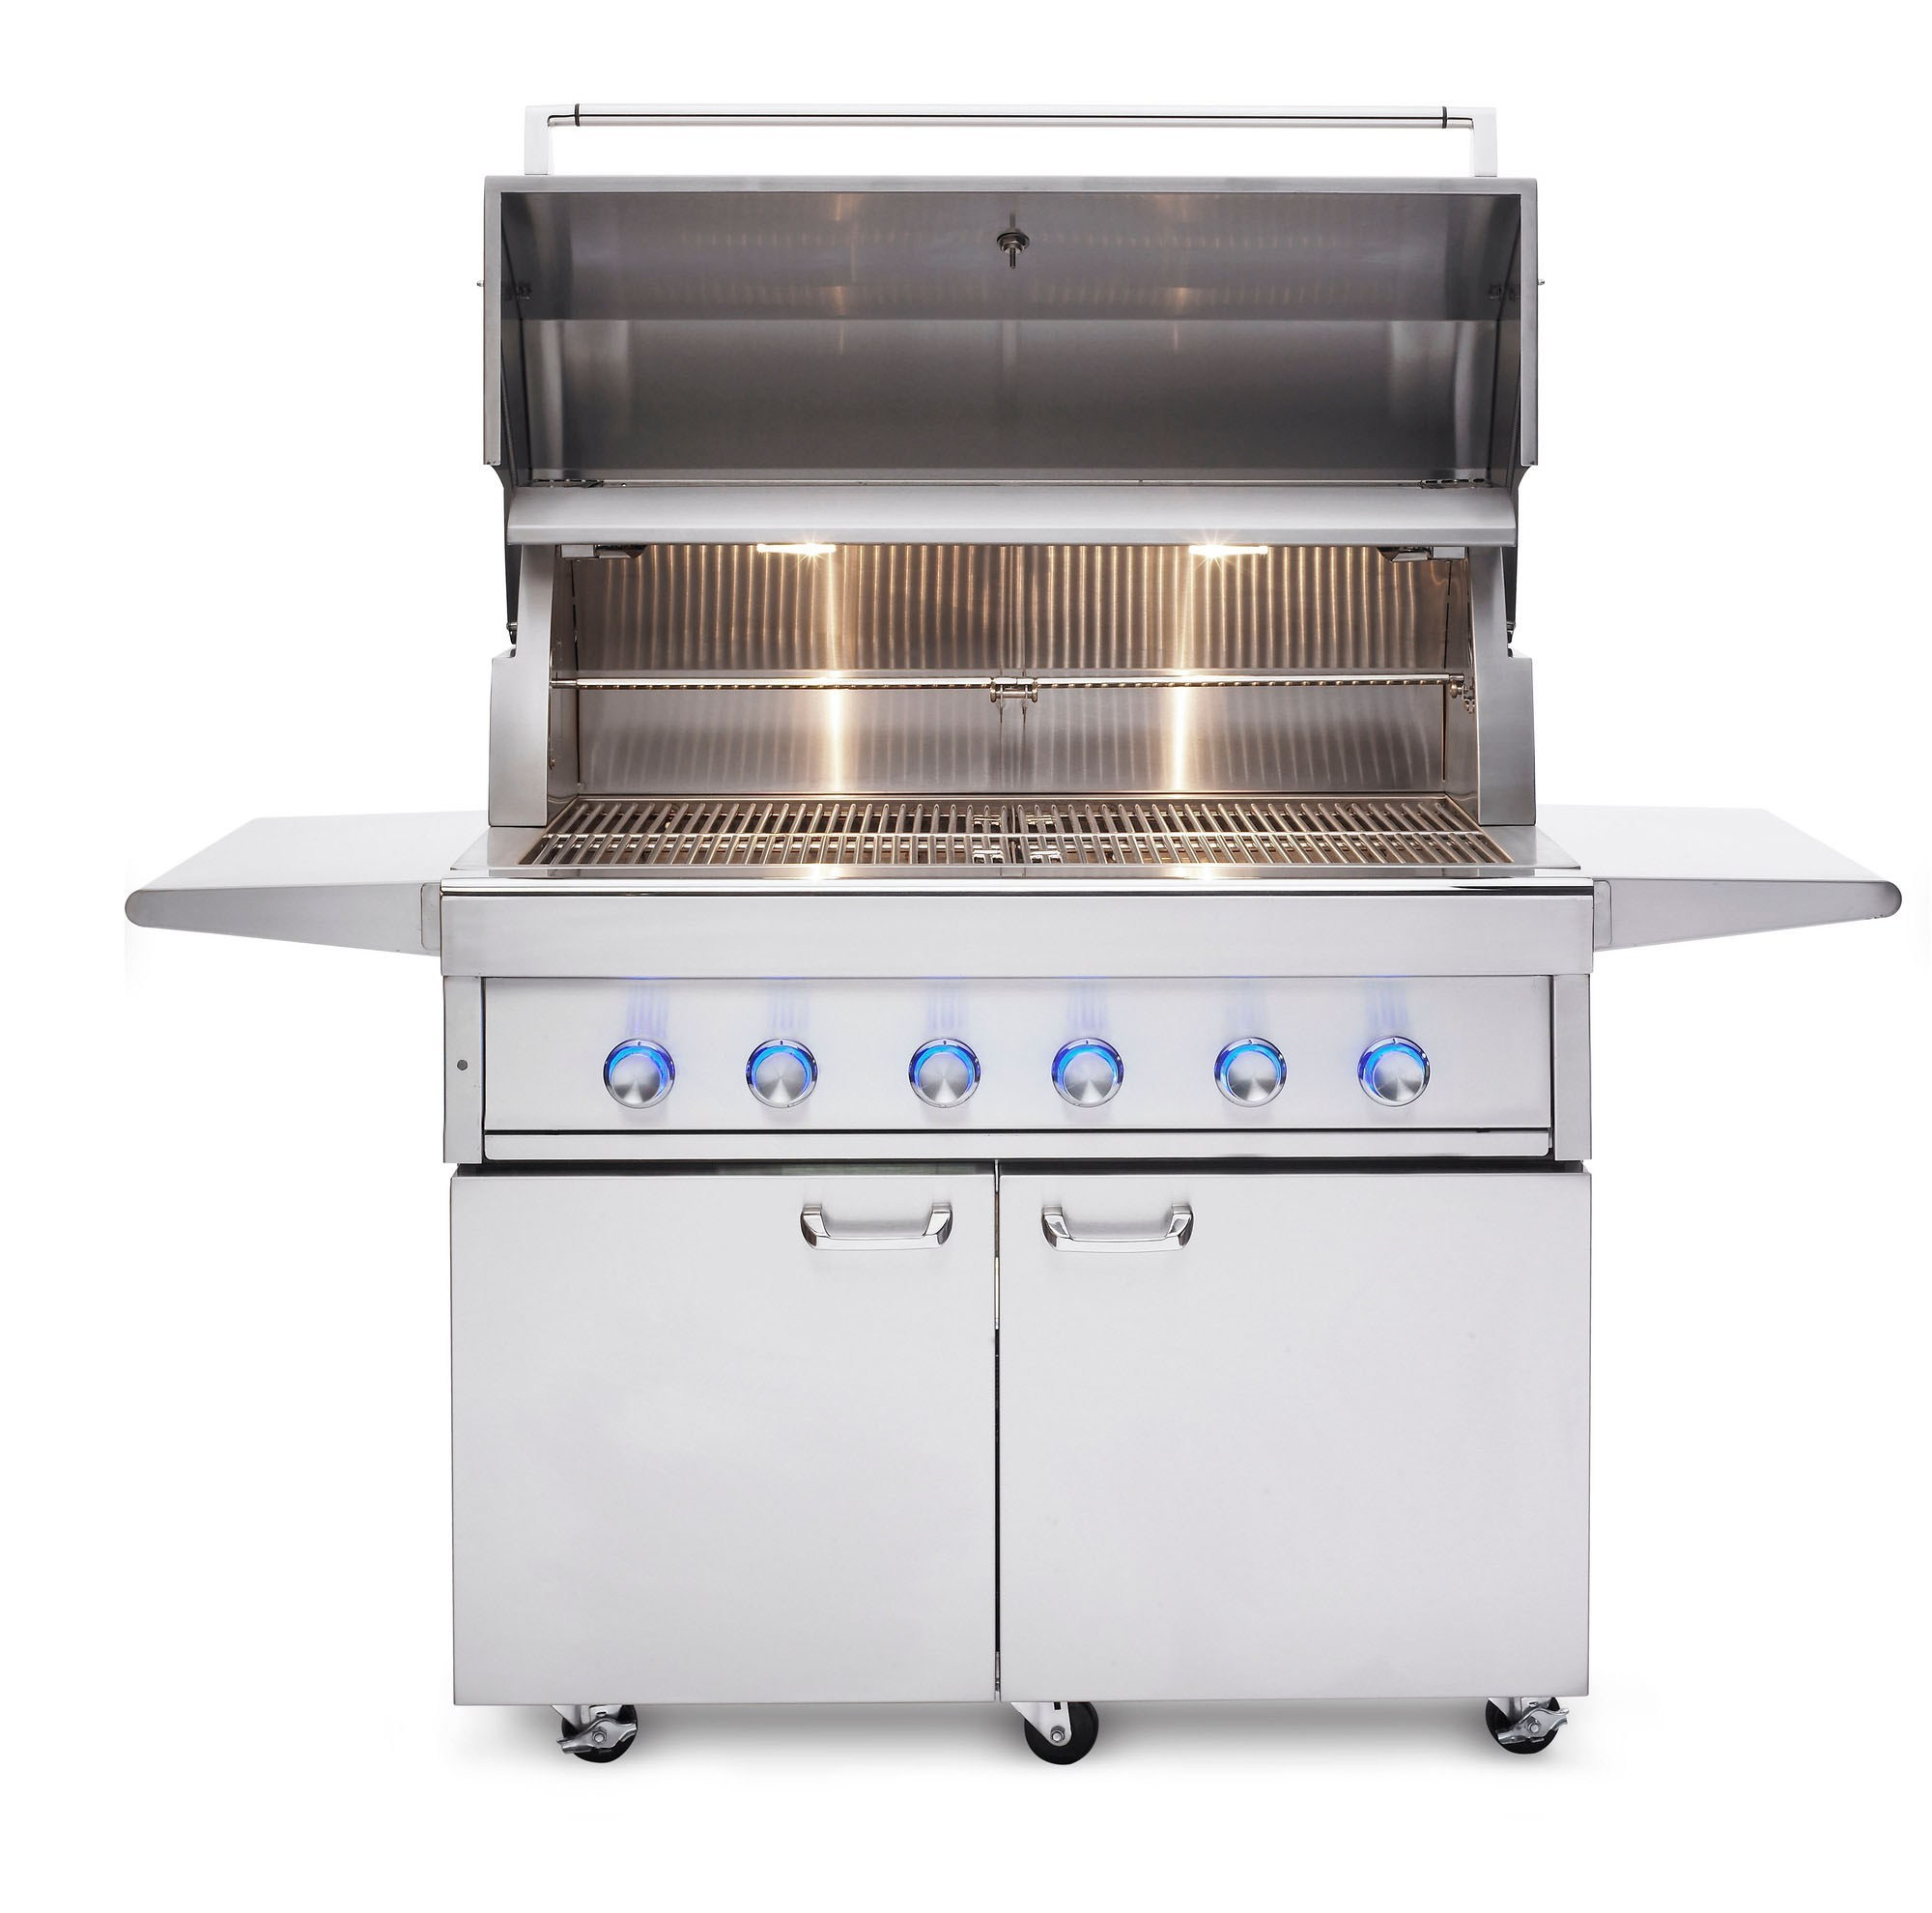 home_grills_2